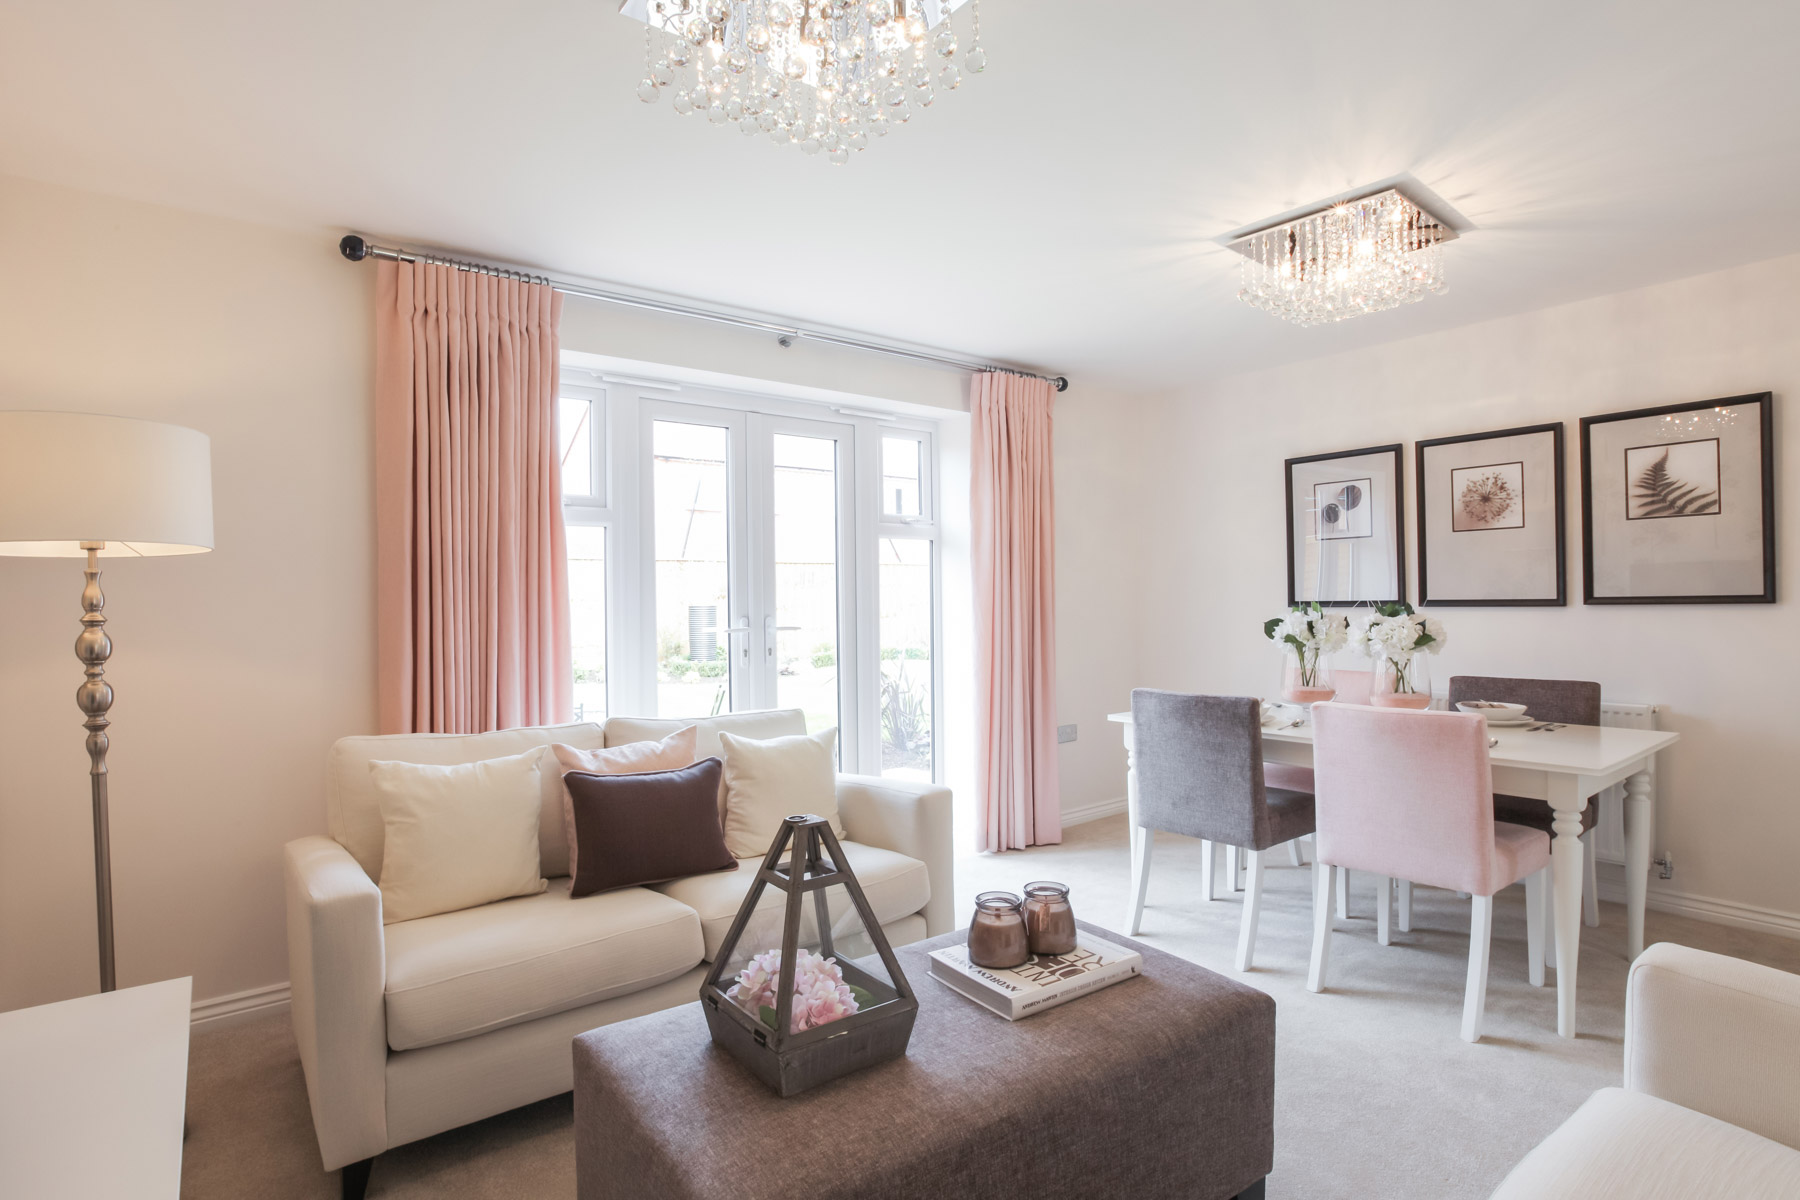 TW Exeter - Mayfield Gardens - Benford example living room 2